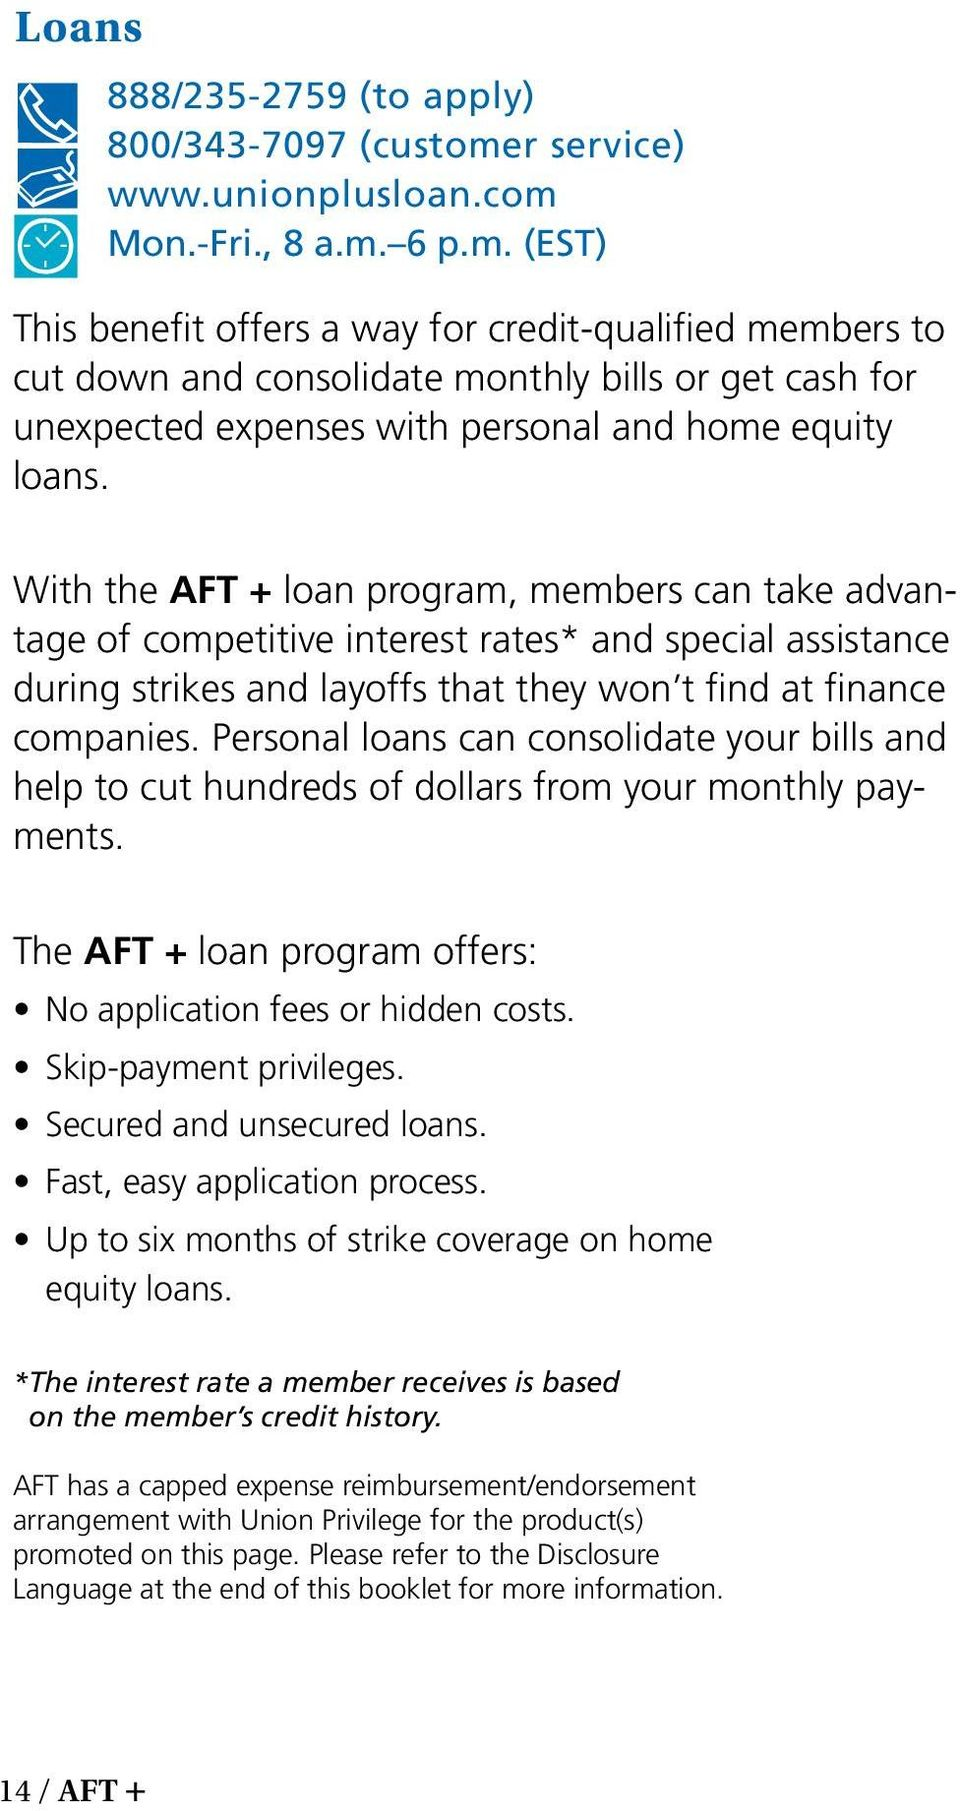 Mon.-Fri., 8 a.m. 6 p.m. (EST) This benefit offers a way for credit-qualified members to cut down and consolidate monthly bills or get cash for unexpected expenses with personal and home equity loans.